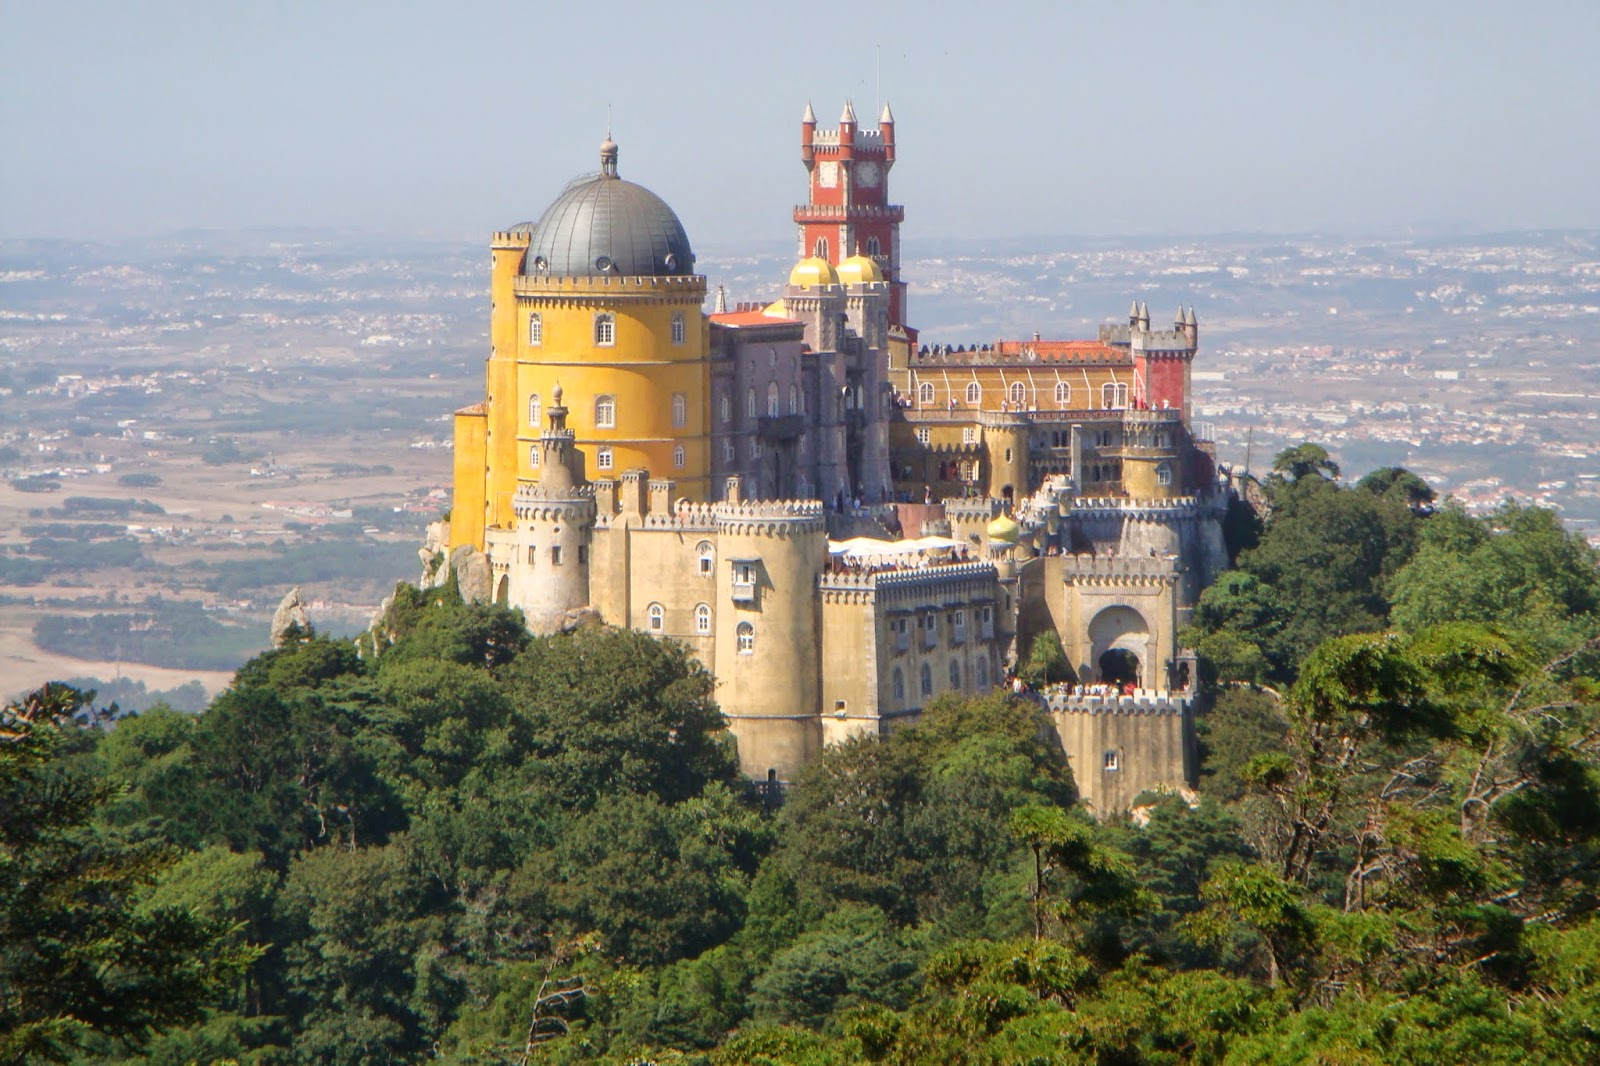 LocalBini BiniBlog Travel Alternative Unique Experience Portugal Lisbon Lifestyle Local Authentic Pena Palace Romantic Architecture History Sintra